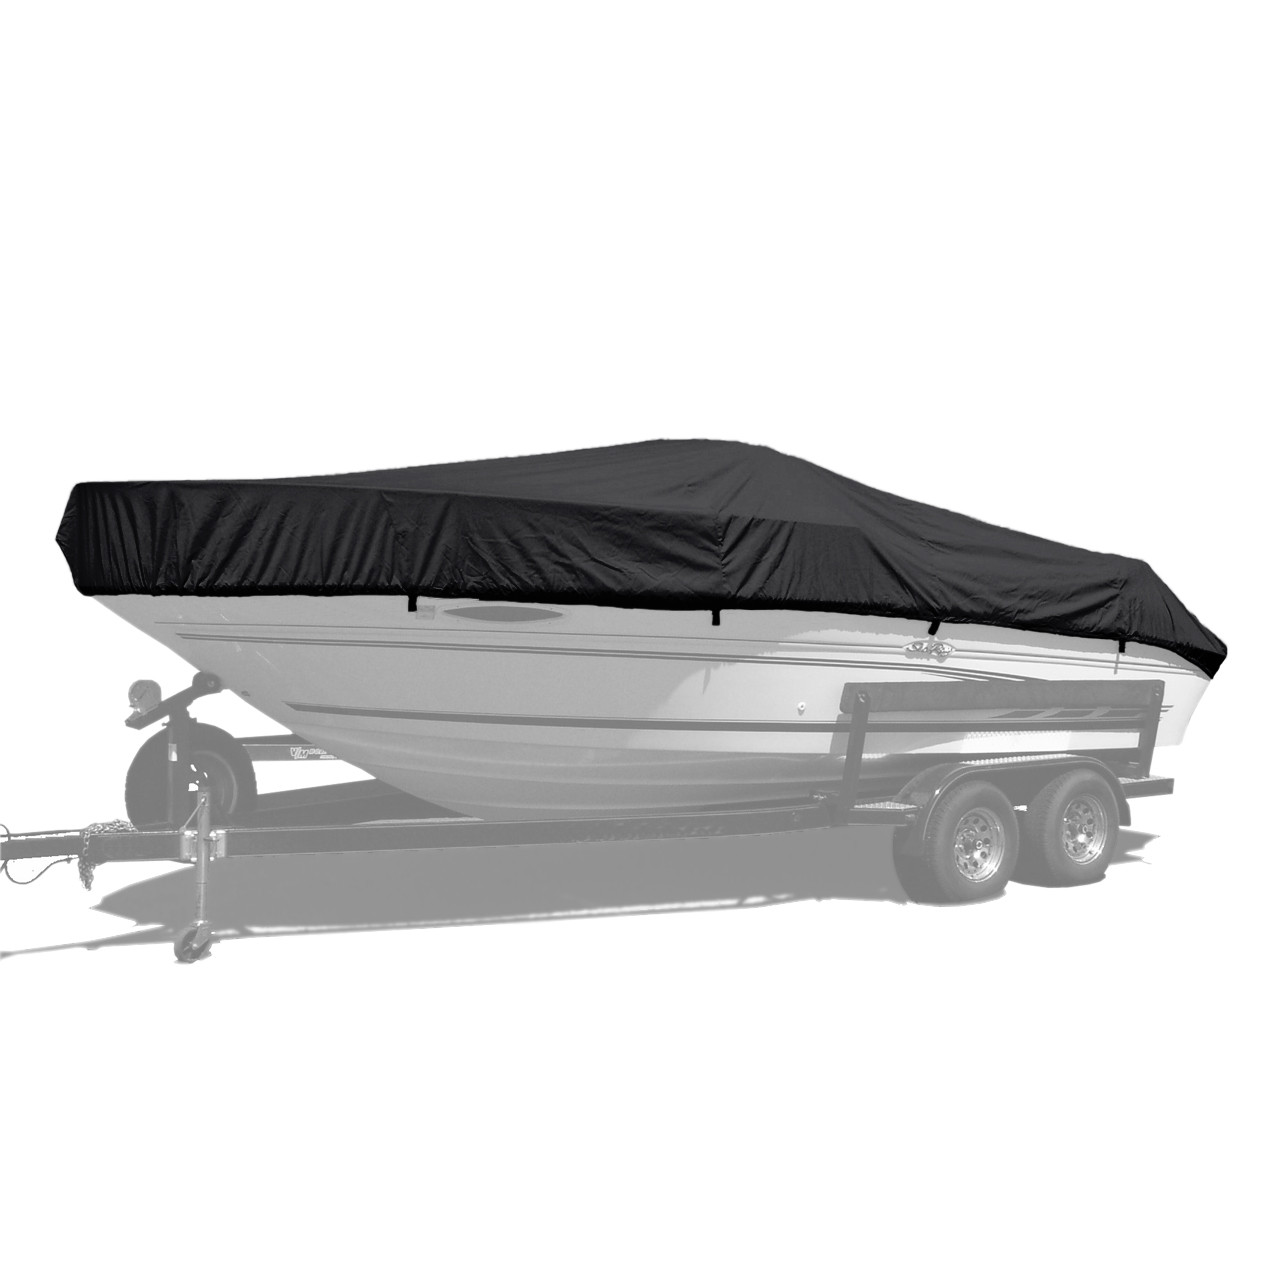 medium resolution of westland custom boat cover with jet black sunbrella fabric